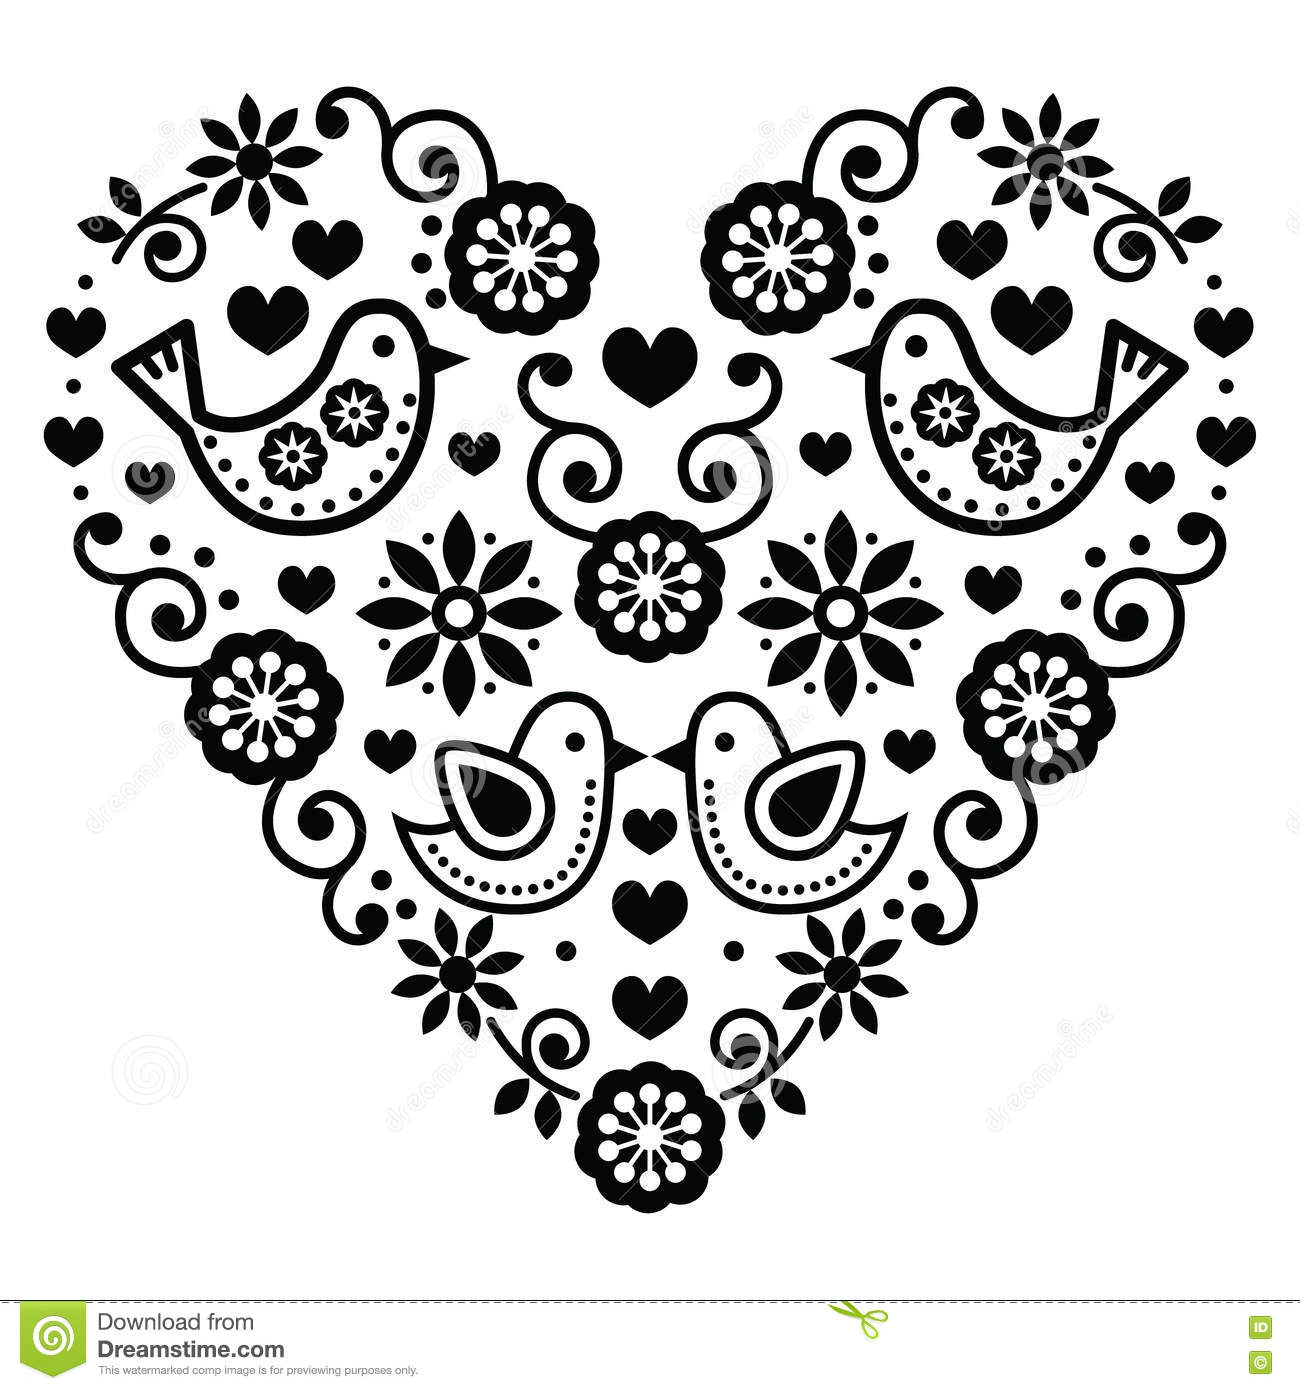 Black And White Clip Art Of Hearts And Flowers Pictures To